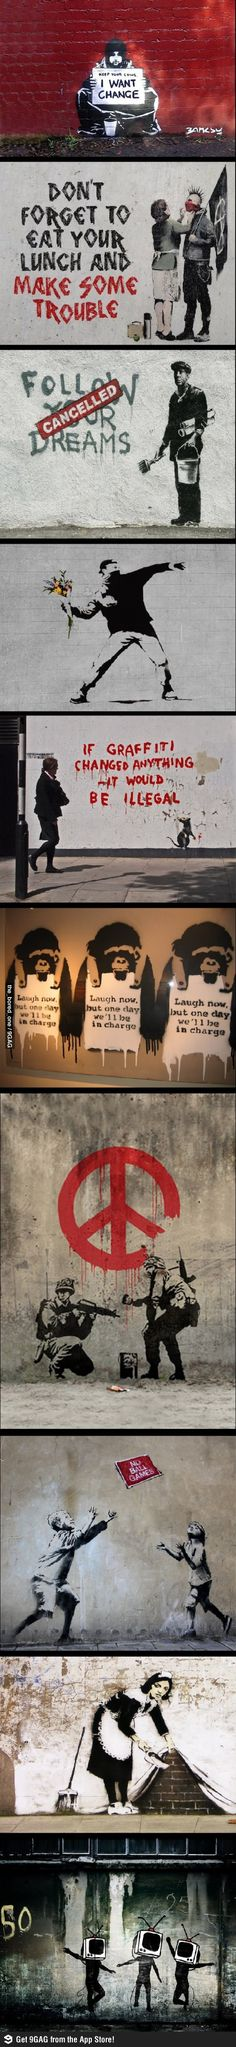 Street art - Banksy some of my favorites